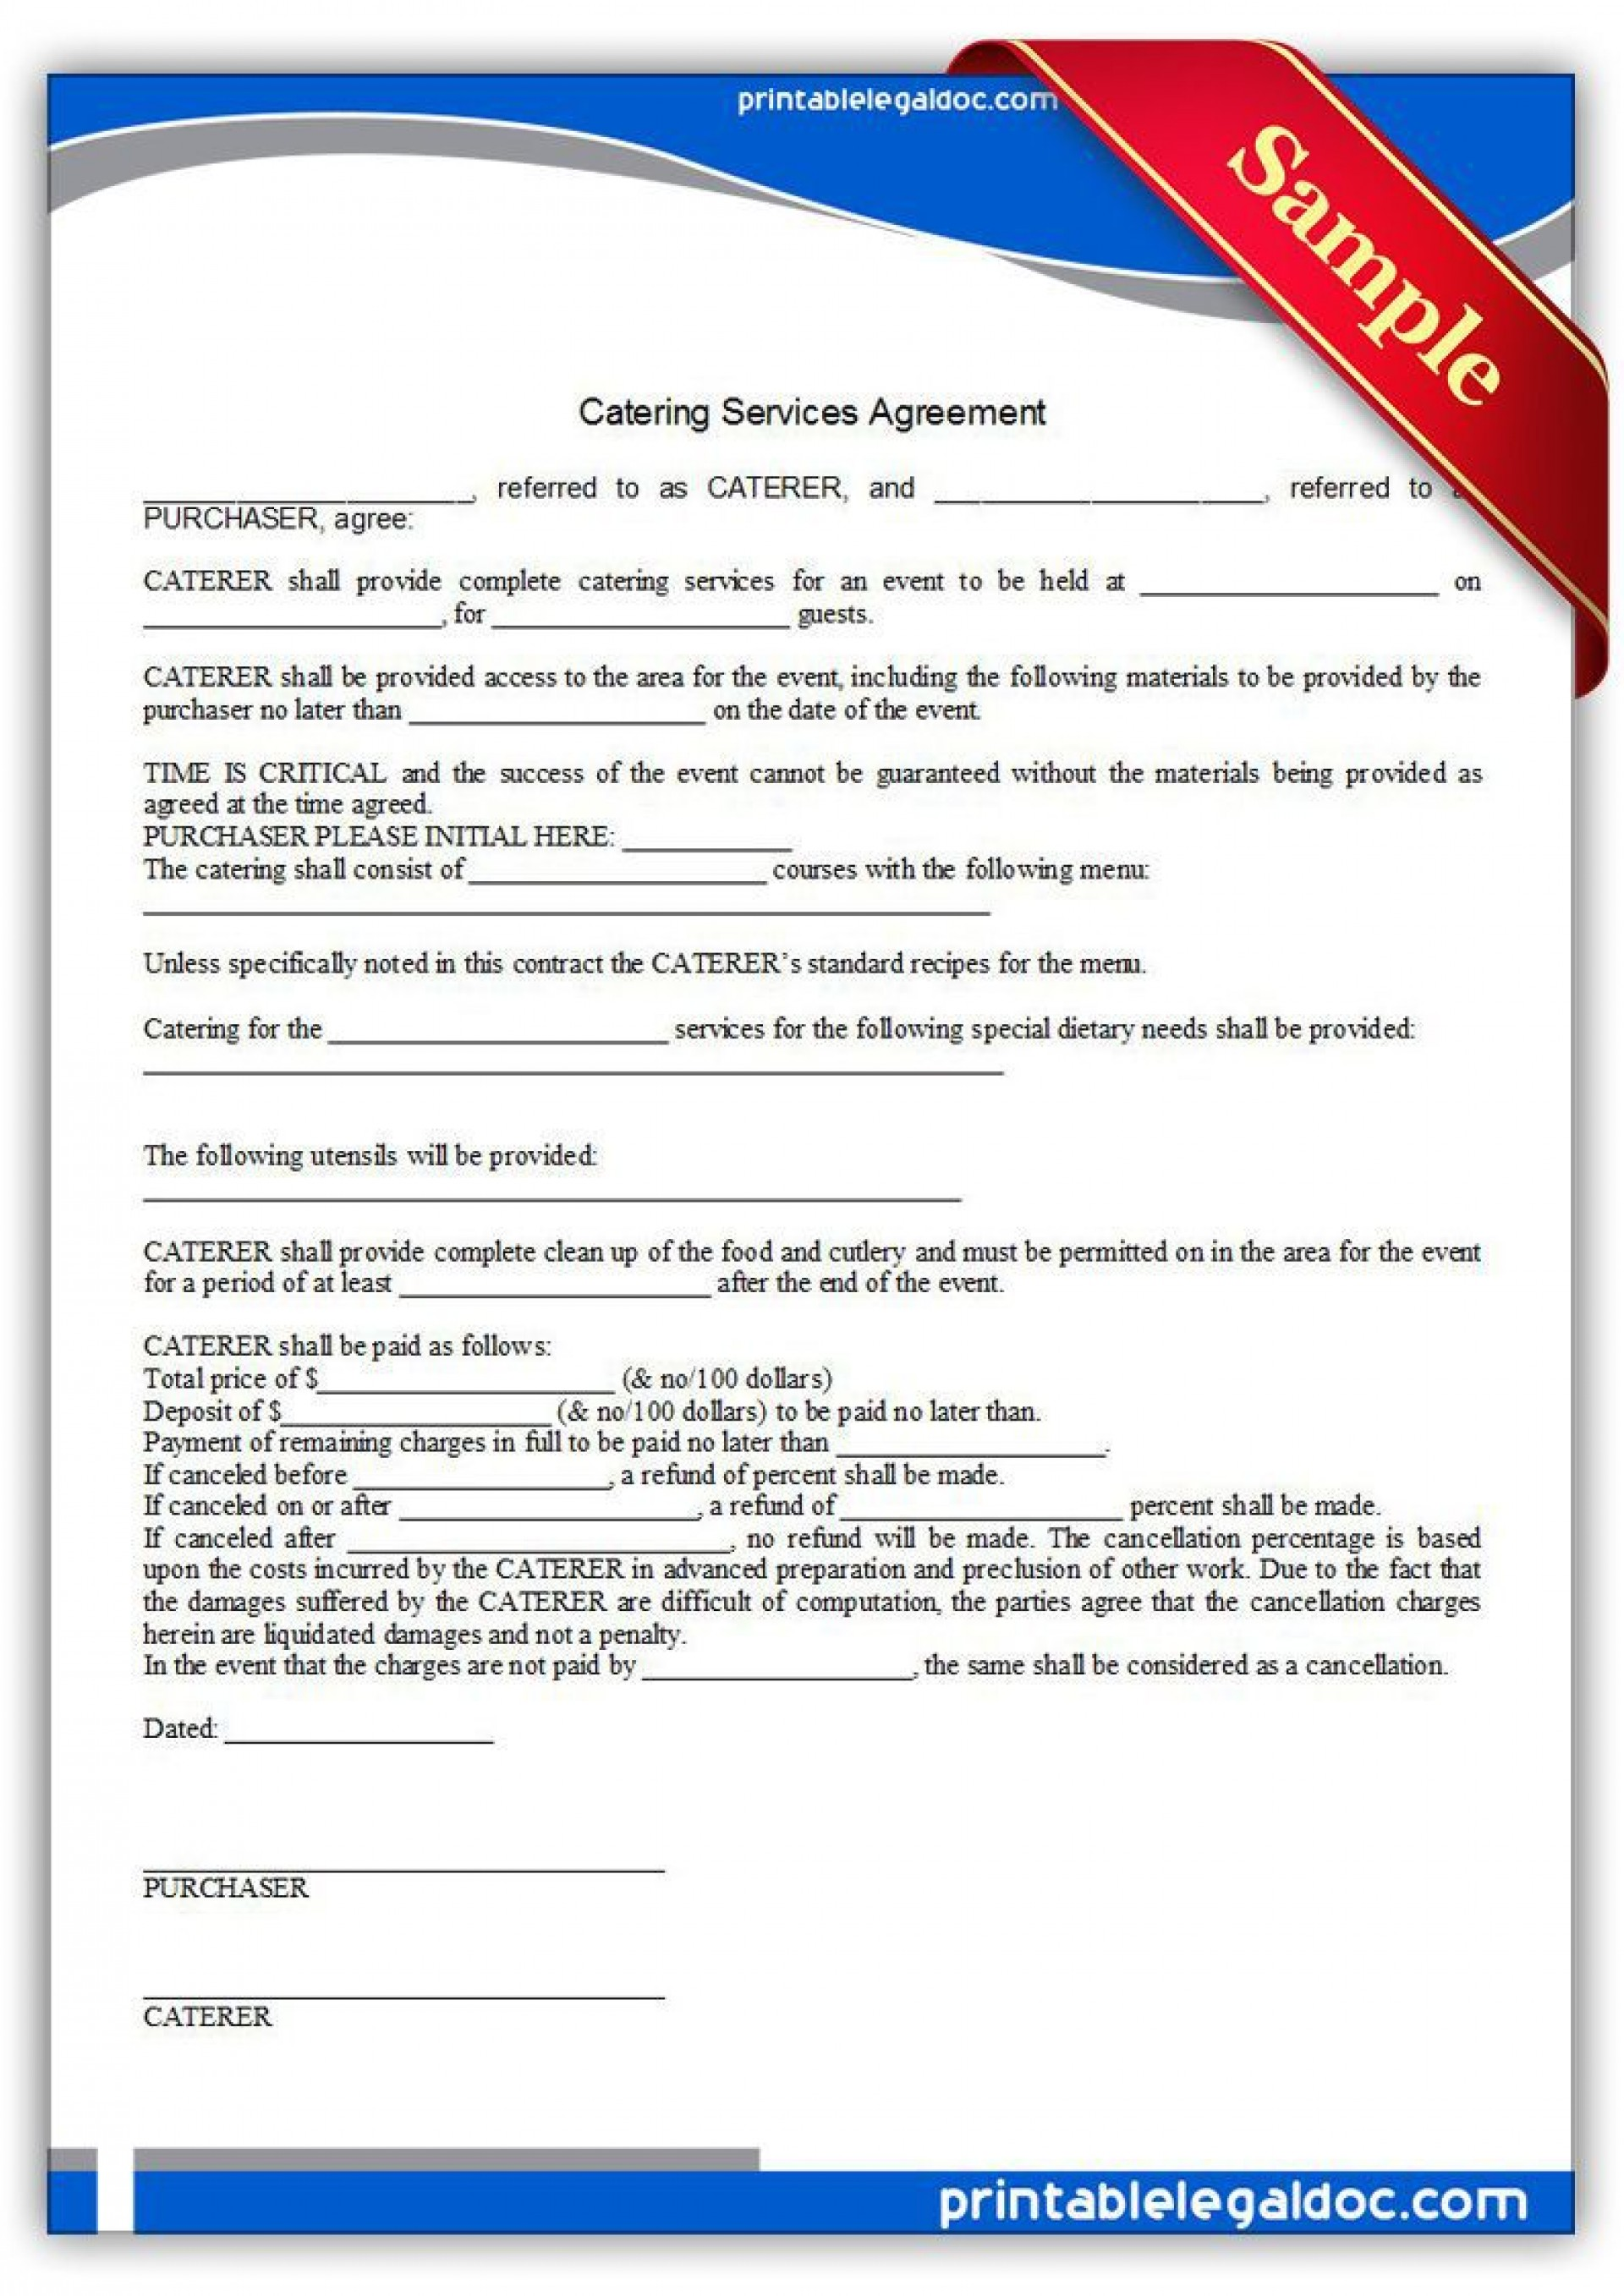 005 Astounding Catering Contract Template Free Idea  Word Sample Printable1920